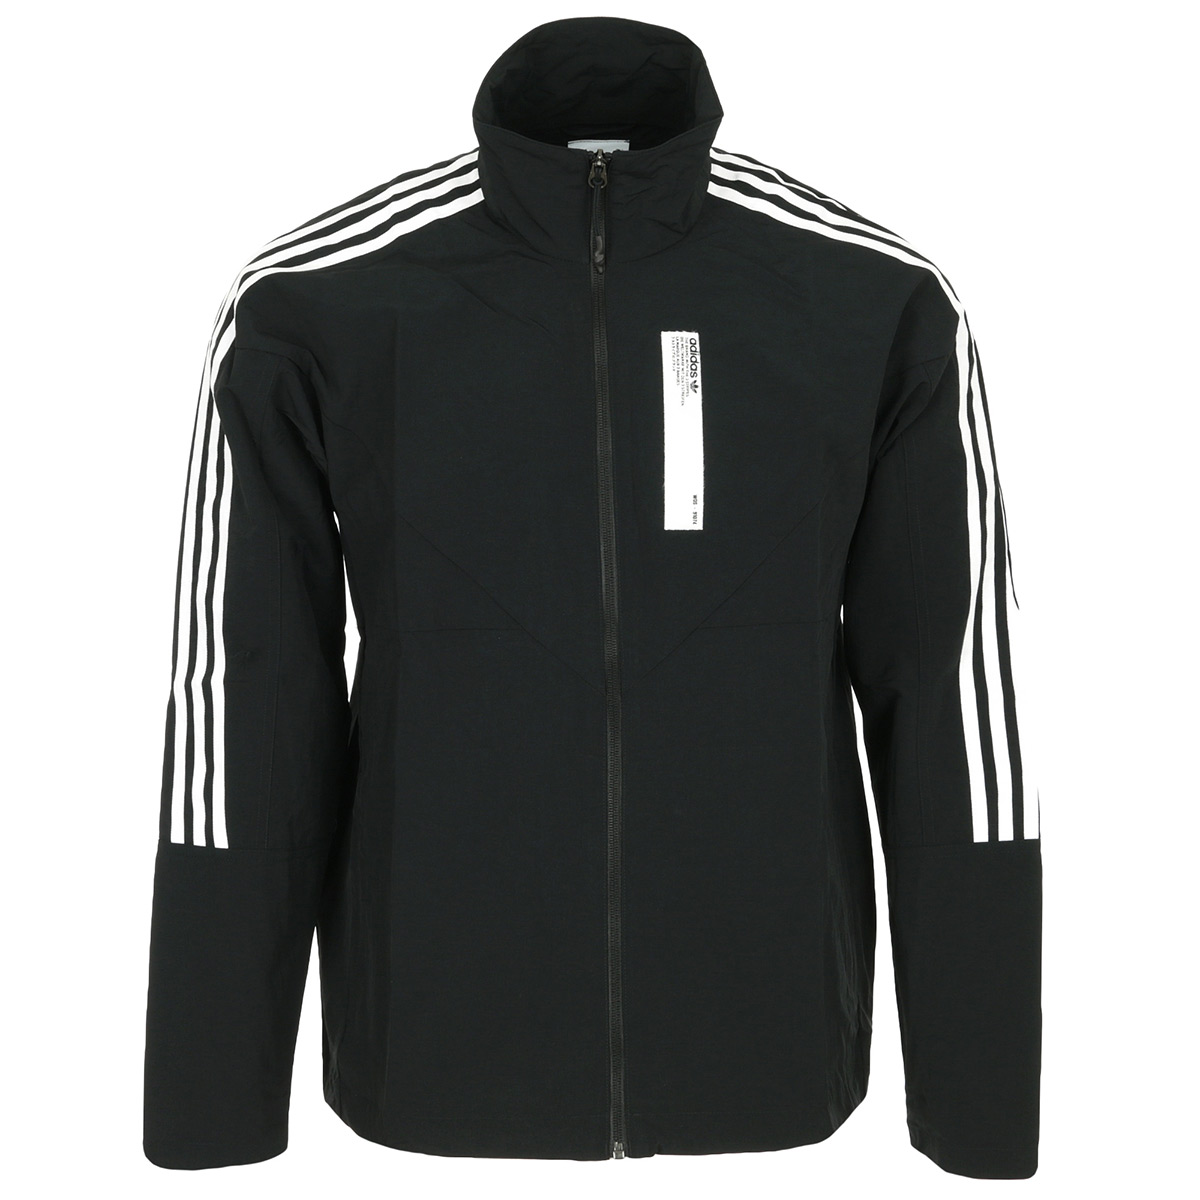 adidas NMD Track Top DH2276, Vestes sport homme